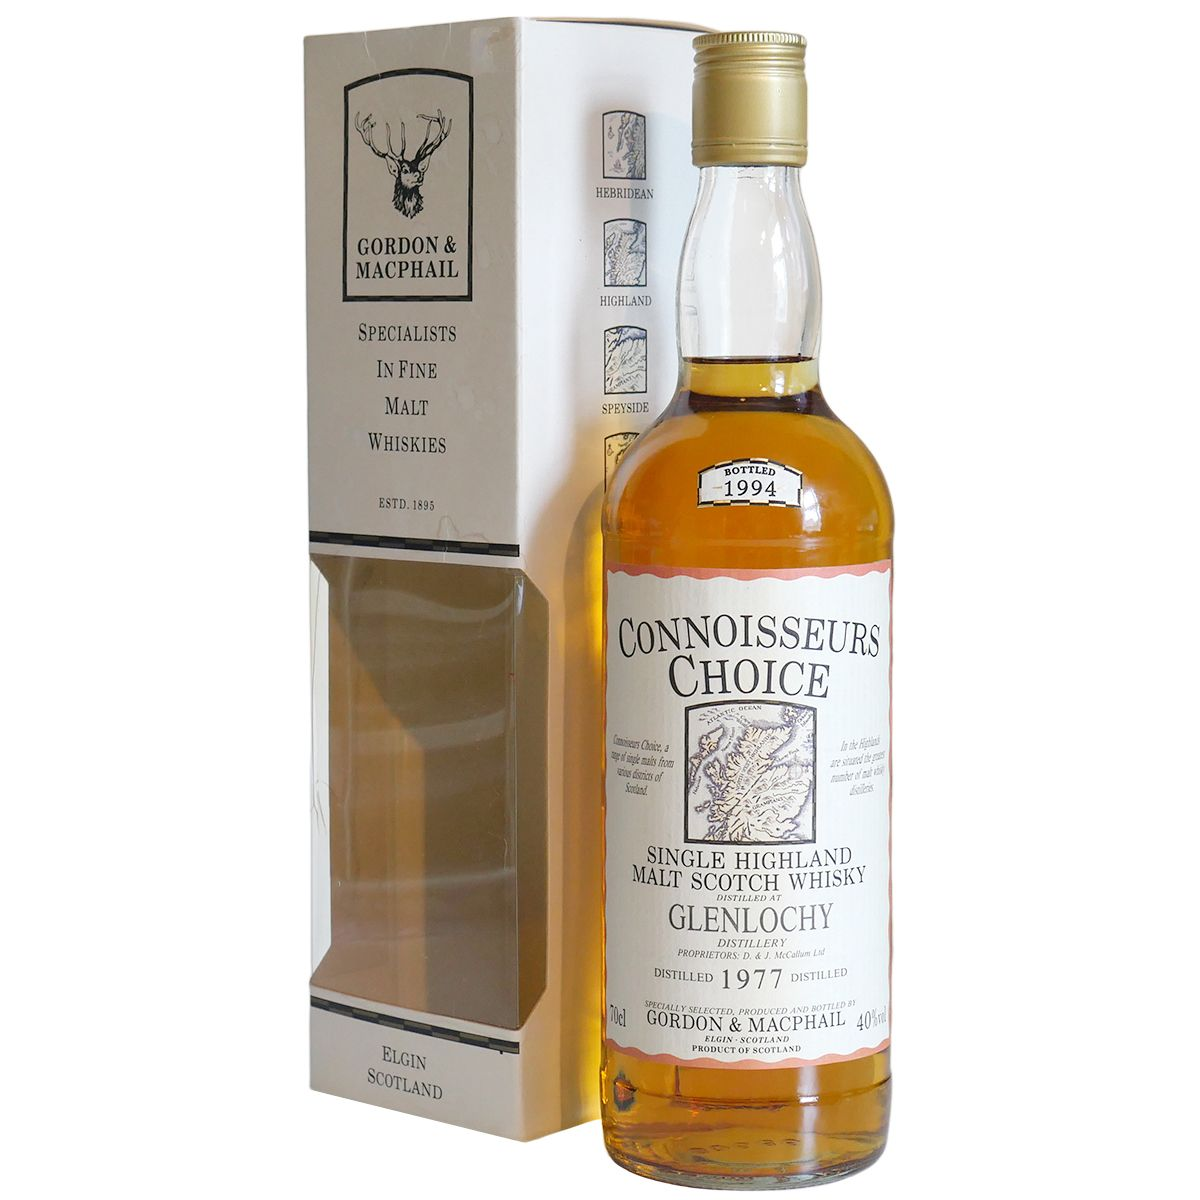 Glenlochy 1977, Gordon & MacPhail Connoisseurs Choice | The Whisky Vault